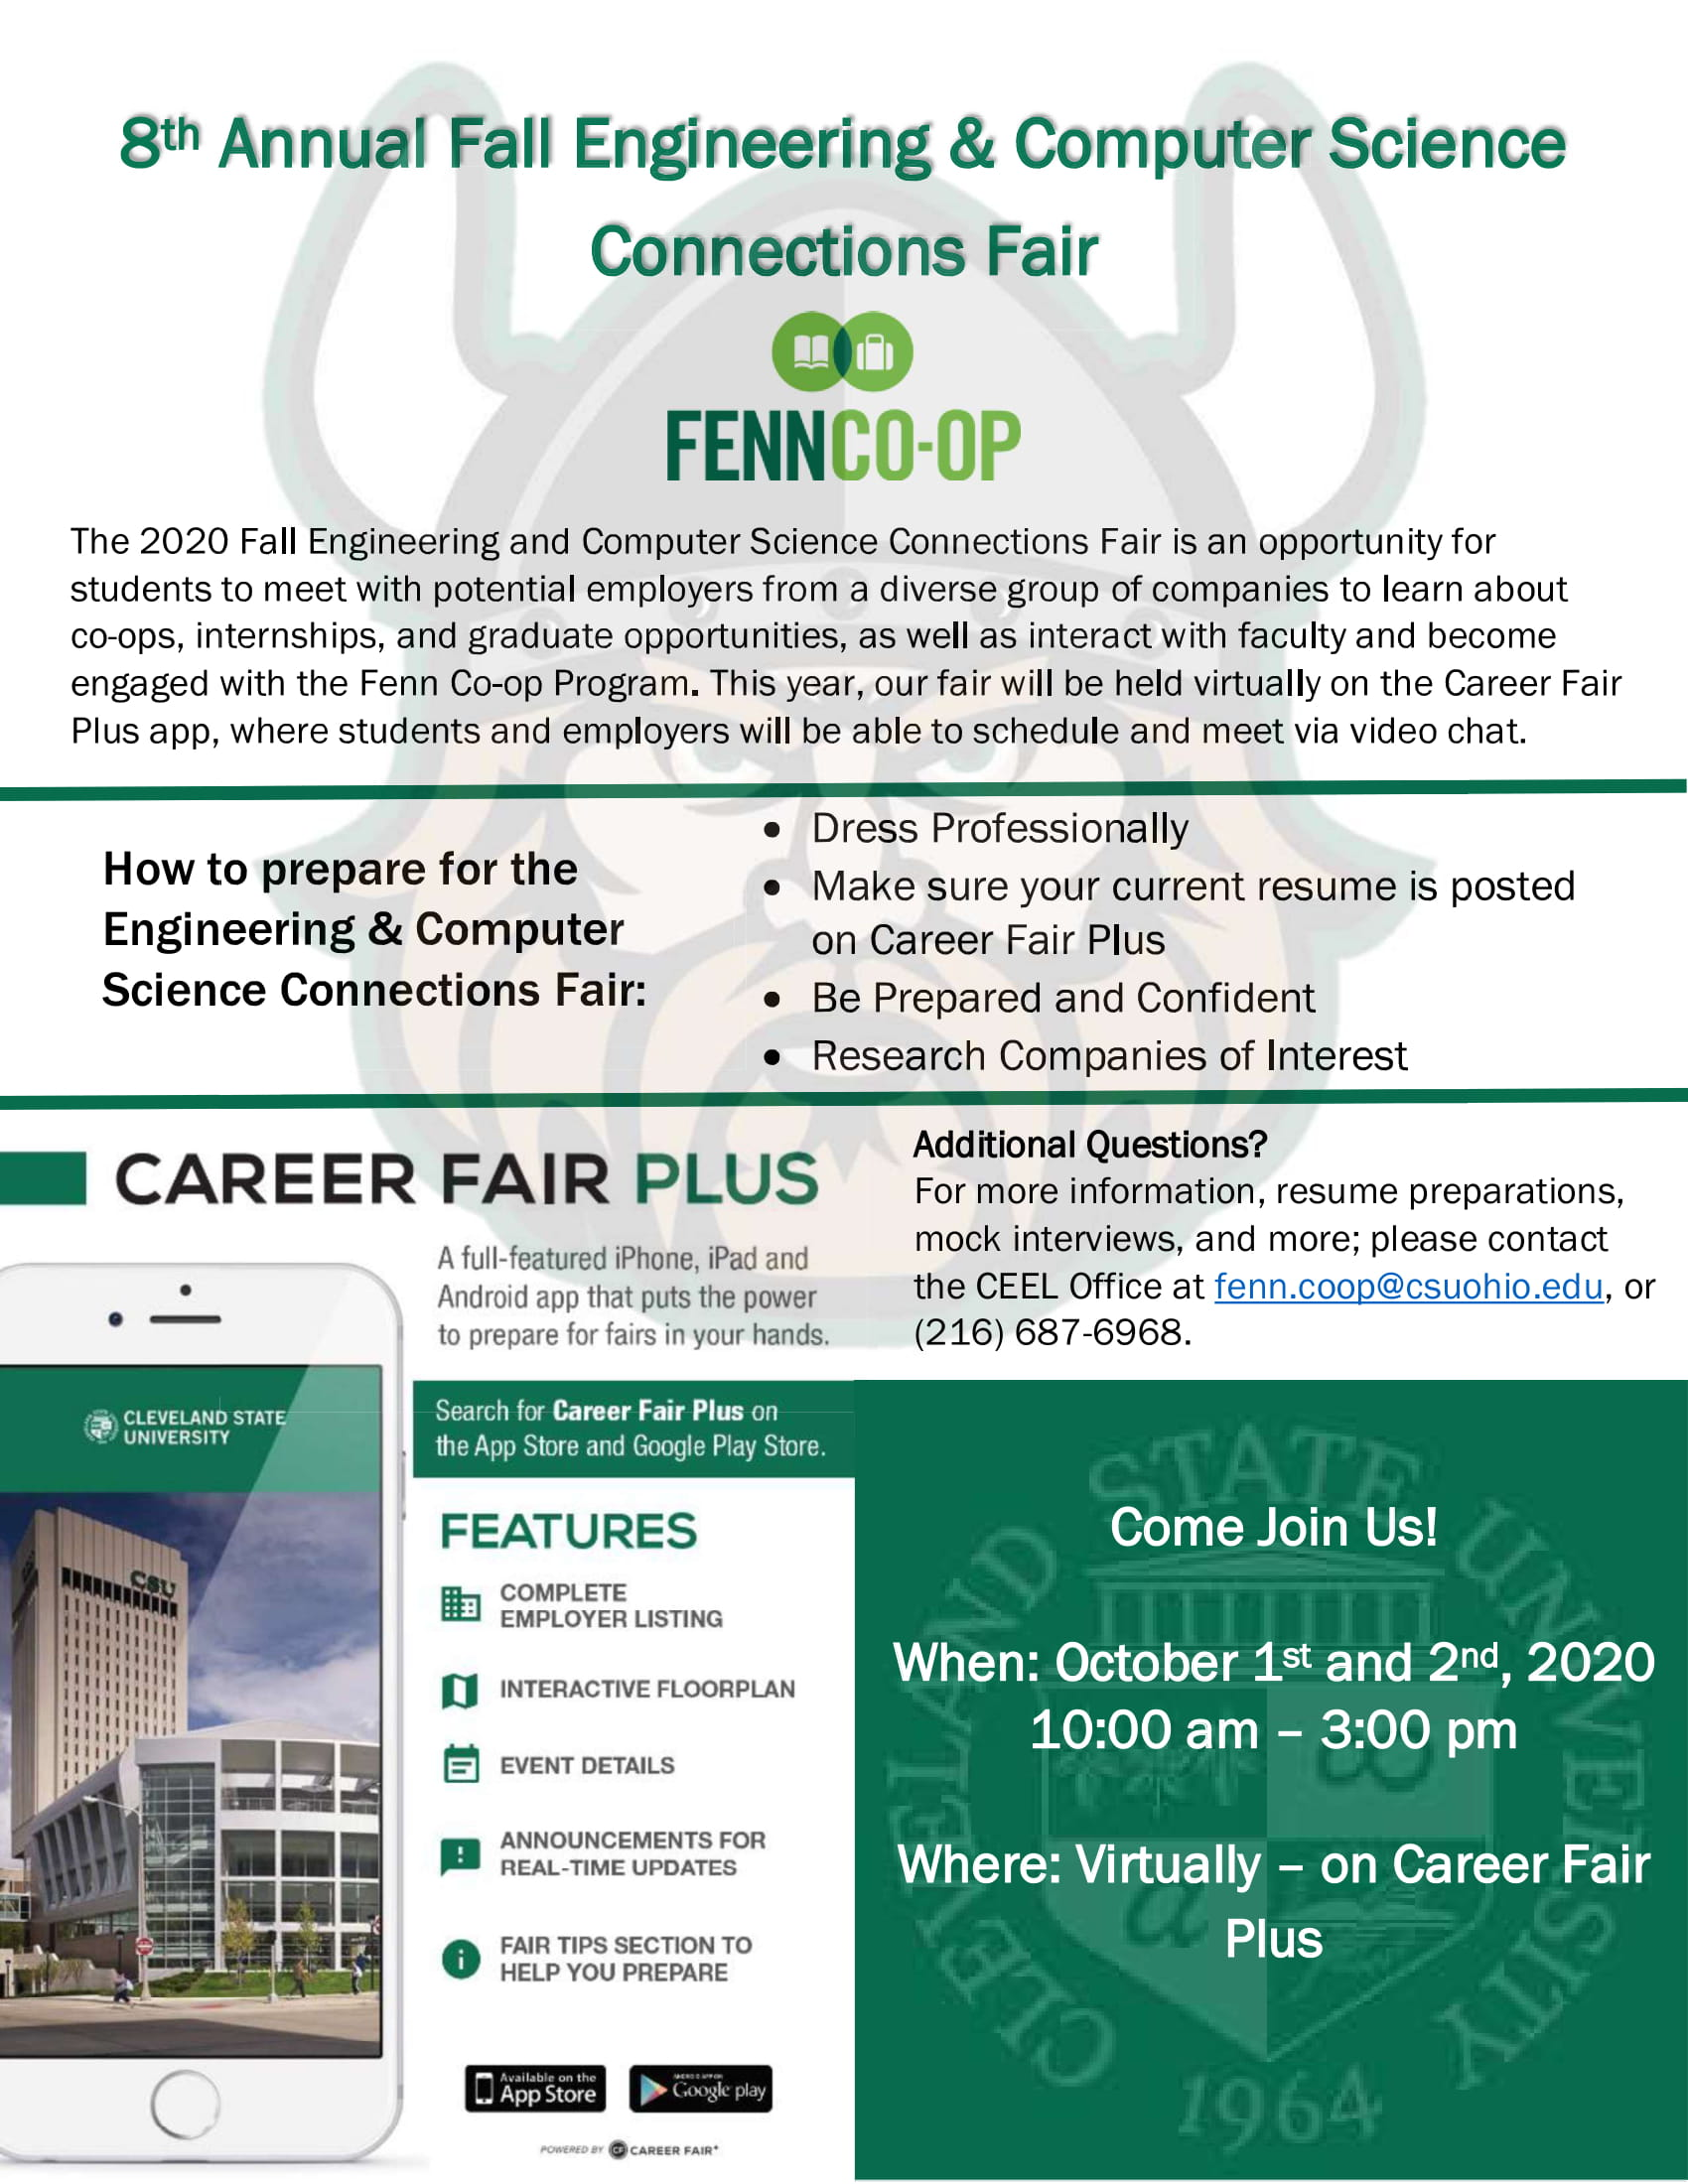 CSU Engineering and Computer Science Connections Fair is October 1st and 2nd from 10am to 3pm. It will be held virtually. For more details, contact fenn.coop@csuohio.edu or call (216) 687-6968